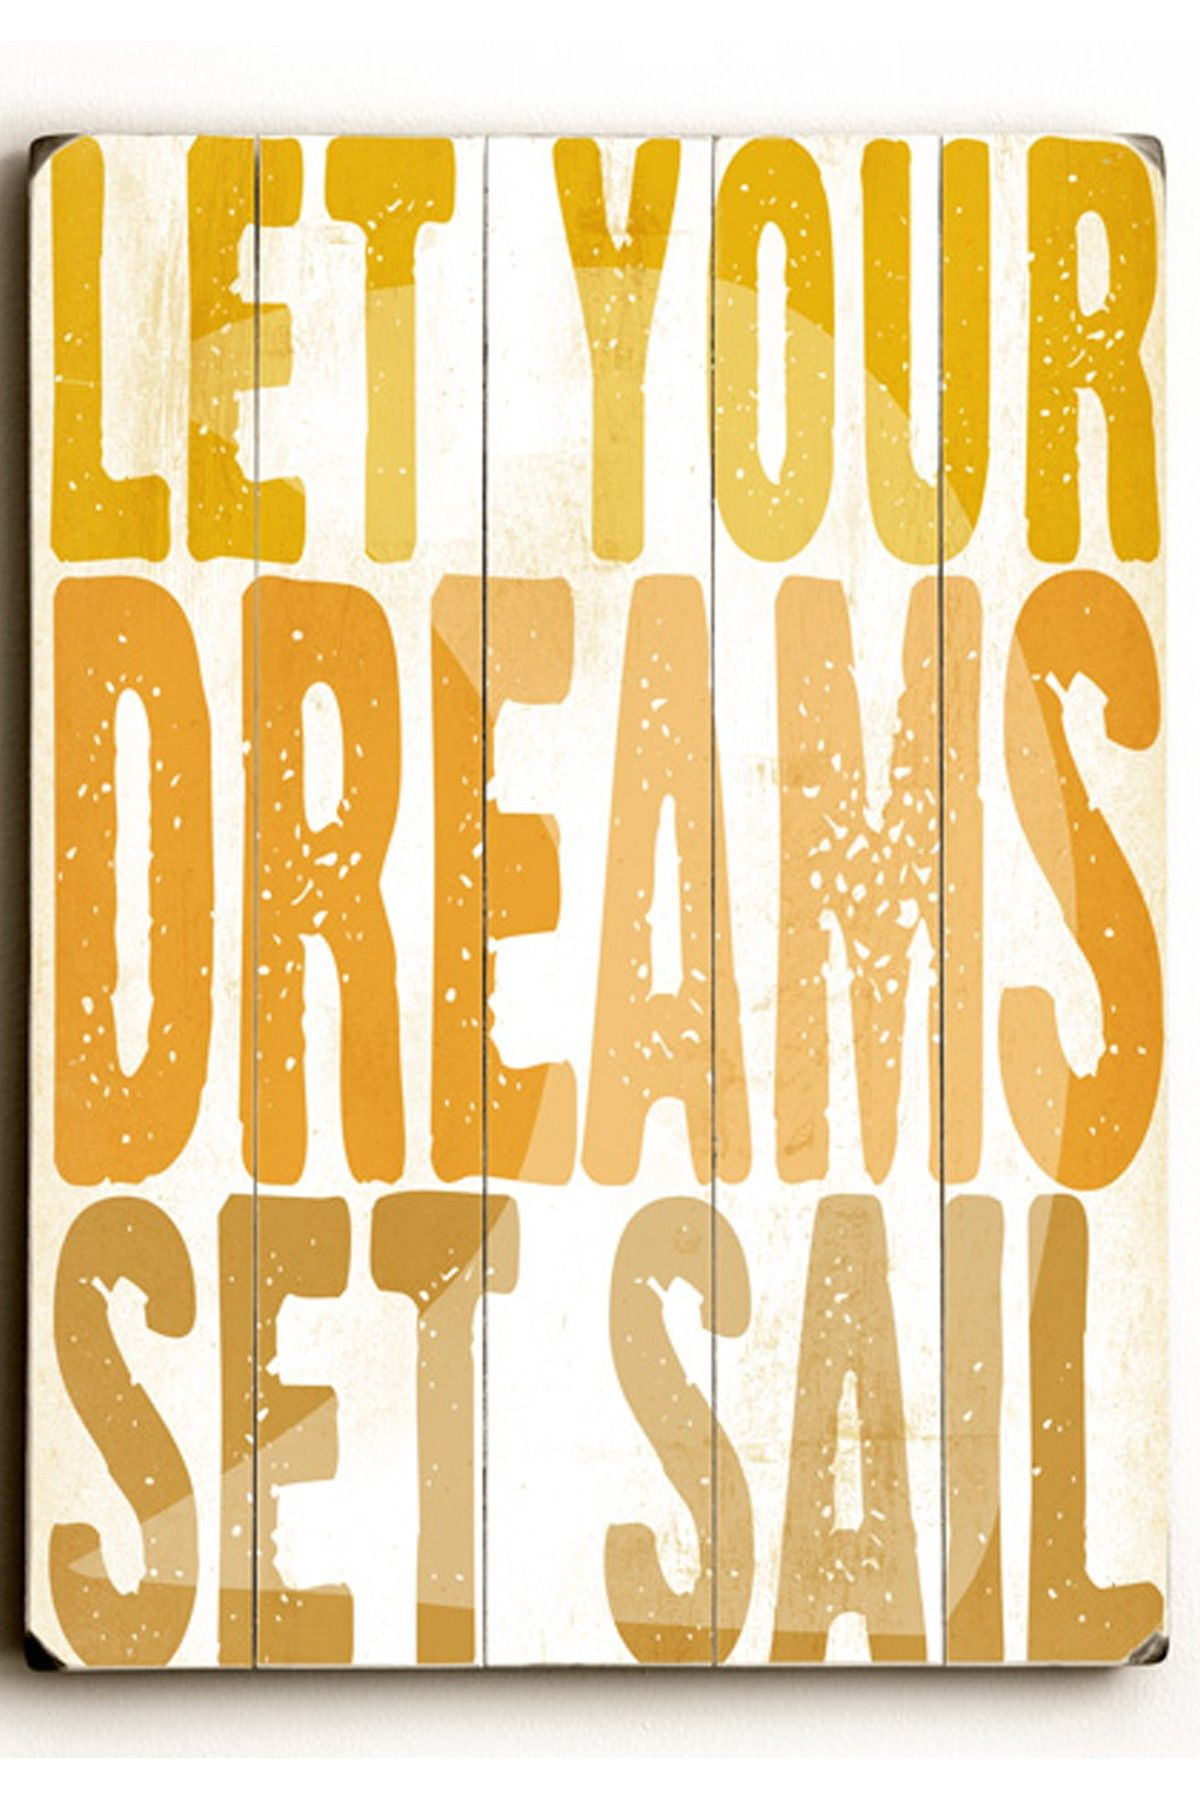 Let Your Dreams Sail Wood Art | Products I Find Interesting ...